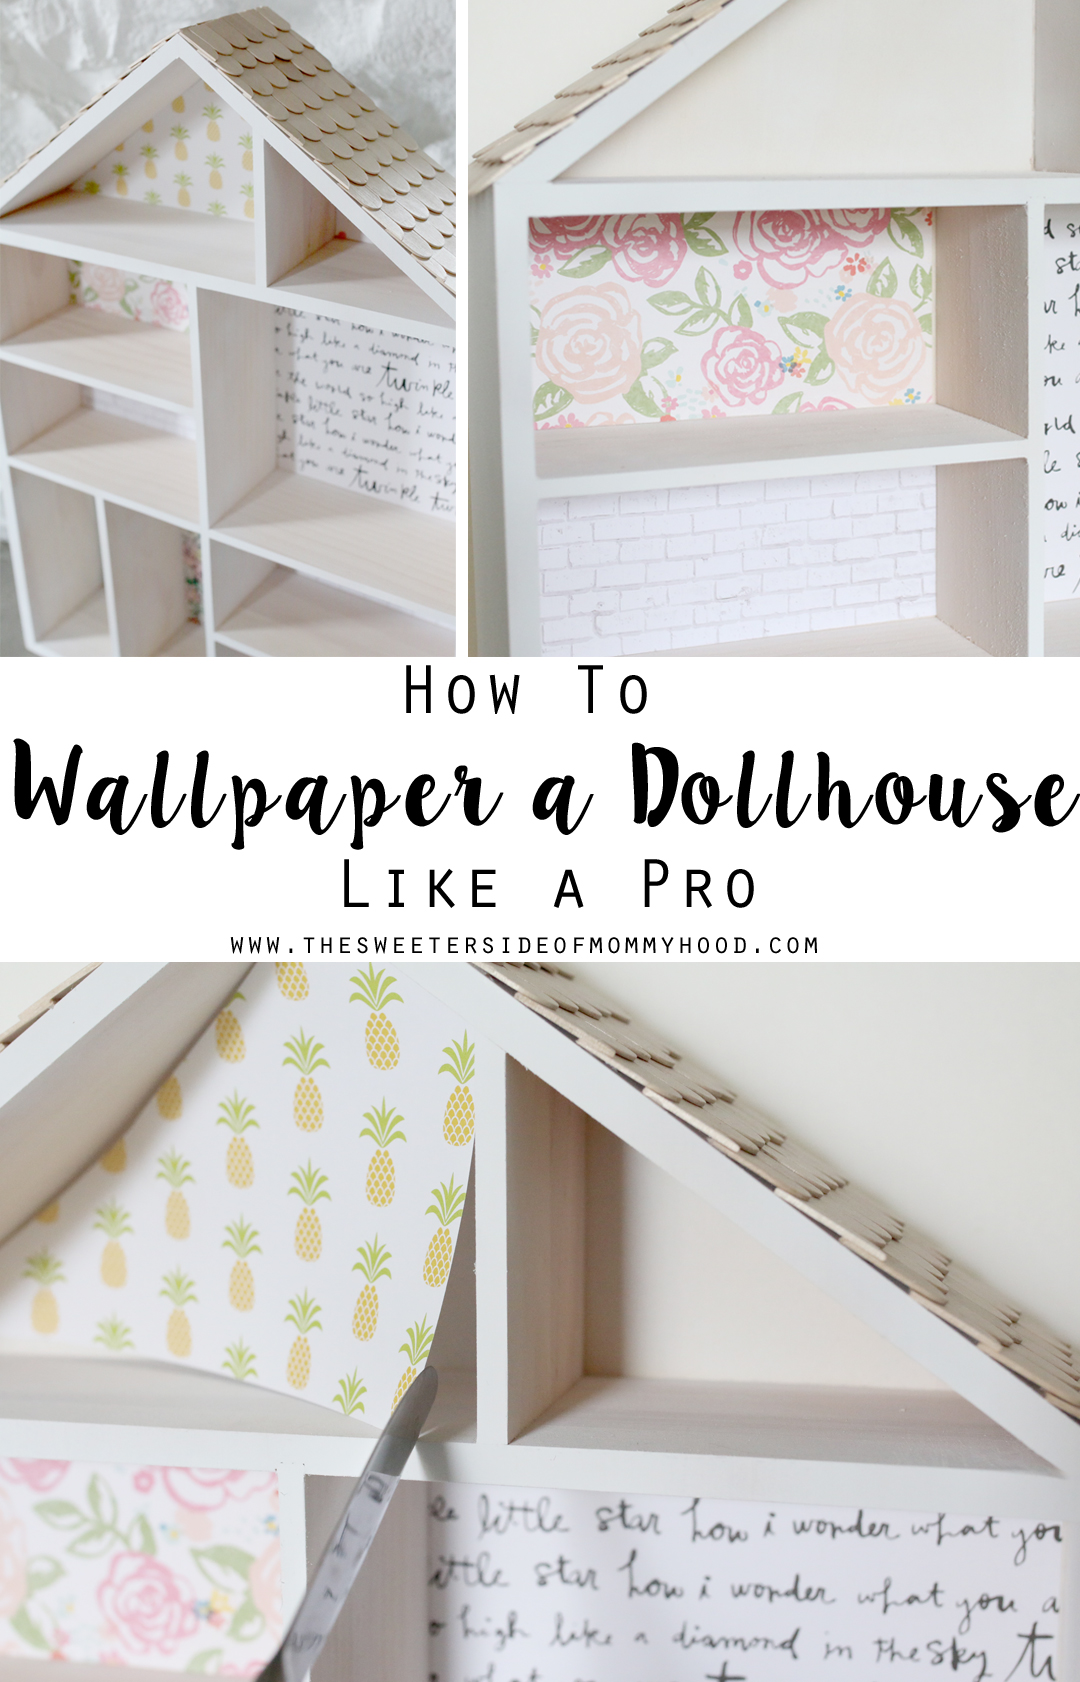 dollhouse-makeover-how-to-wallpaper-a-dollhouse-like-a-pro